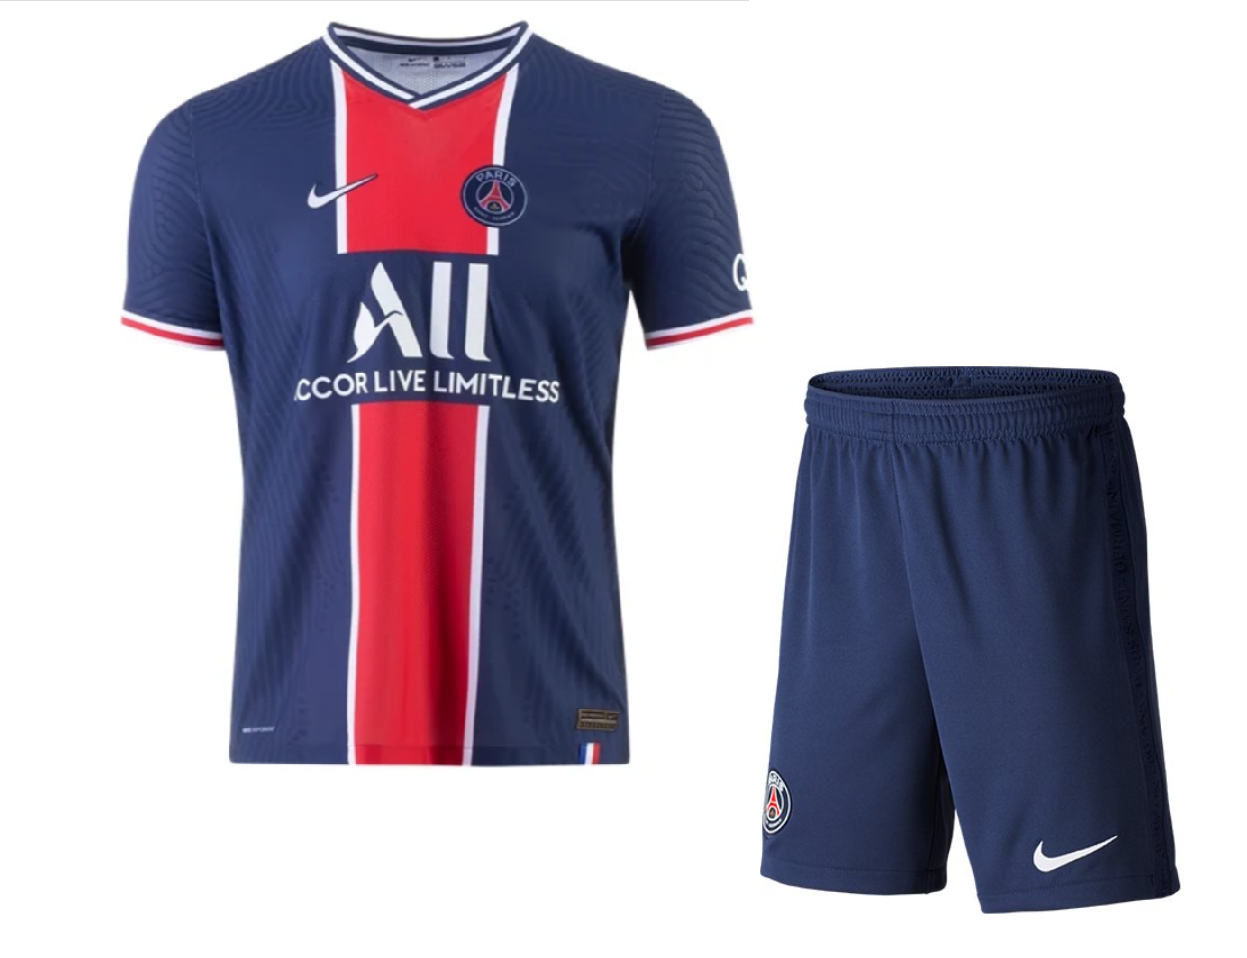 PSG 20/21 Authentic Home Kit by Nike